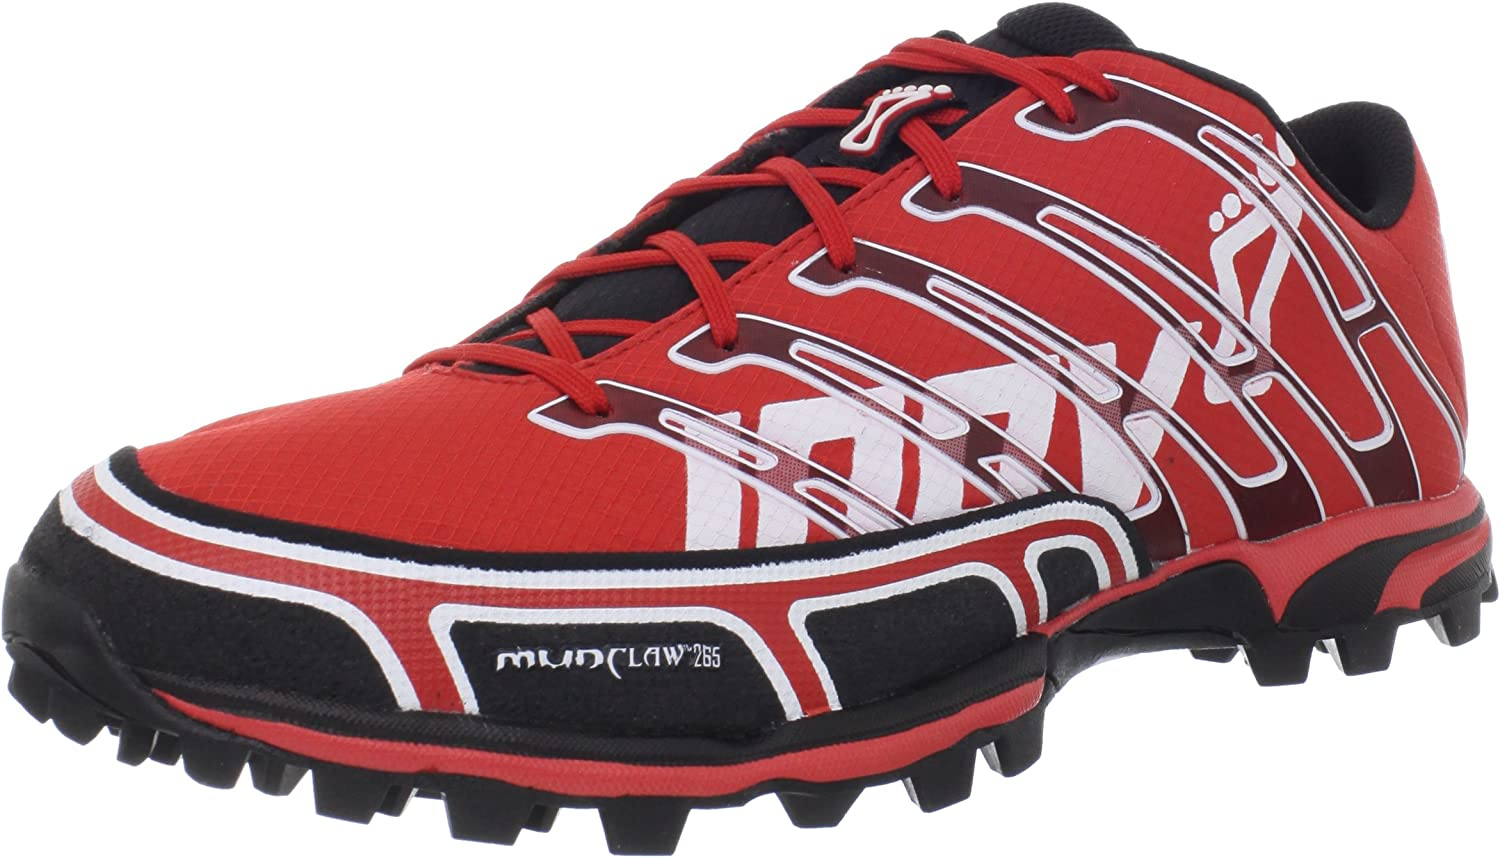 Inov8 Mudclaw 275 Mens Trail Running Shoes Red